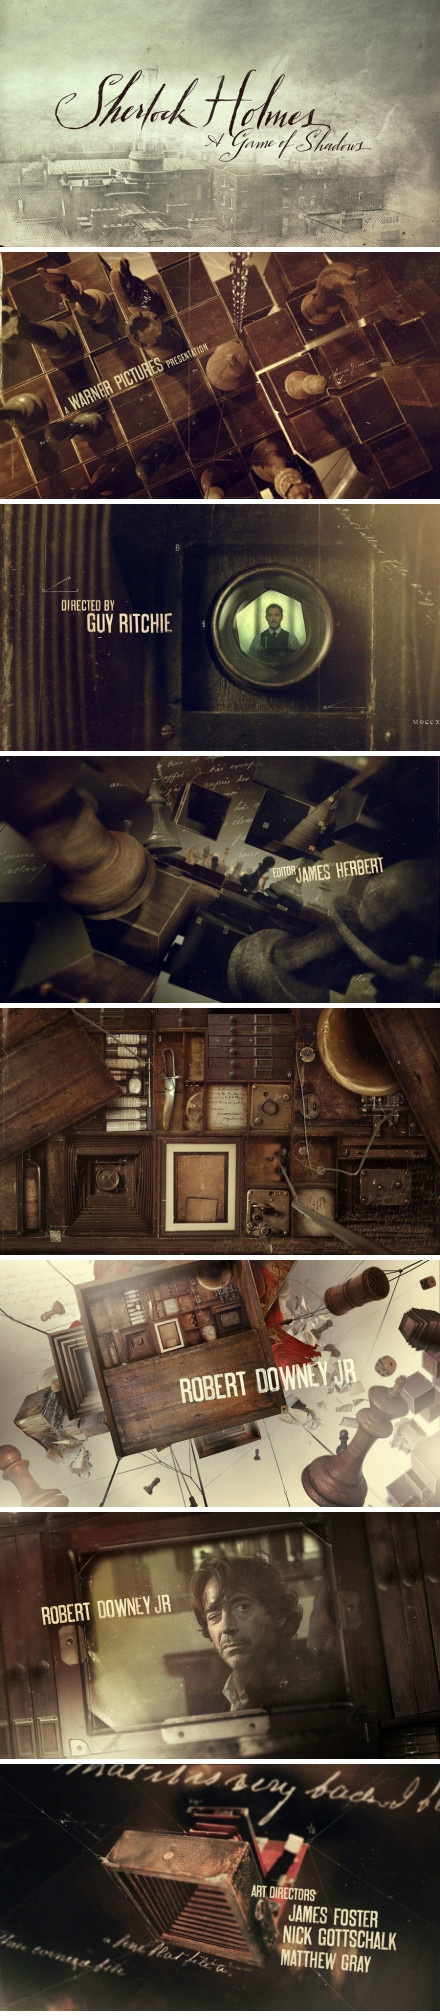 【90˚ Vision】The opening of Sherlock Holmes film made by Prologue